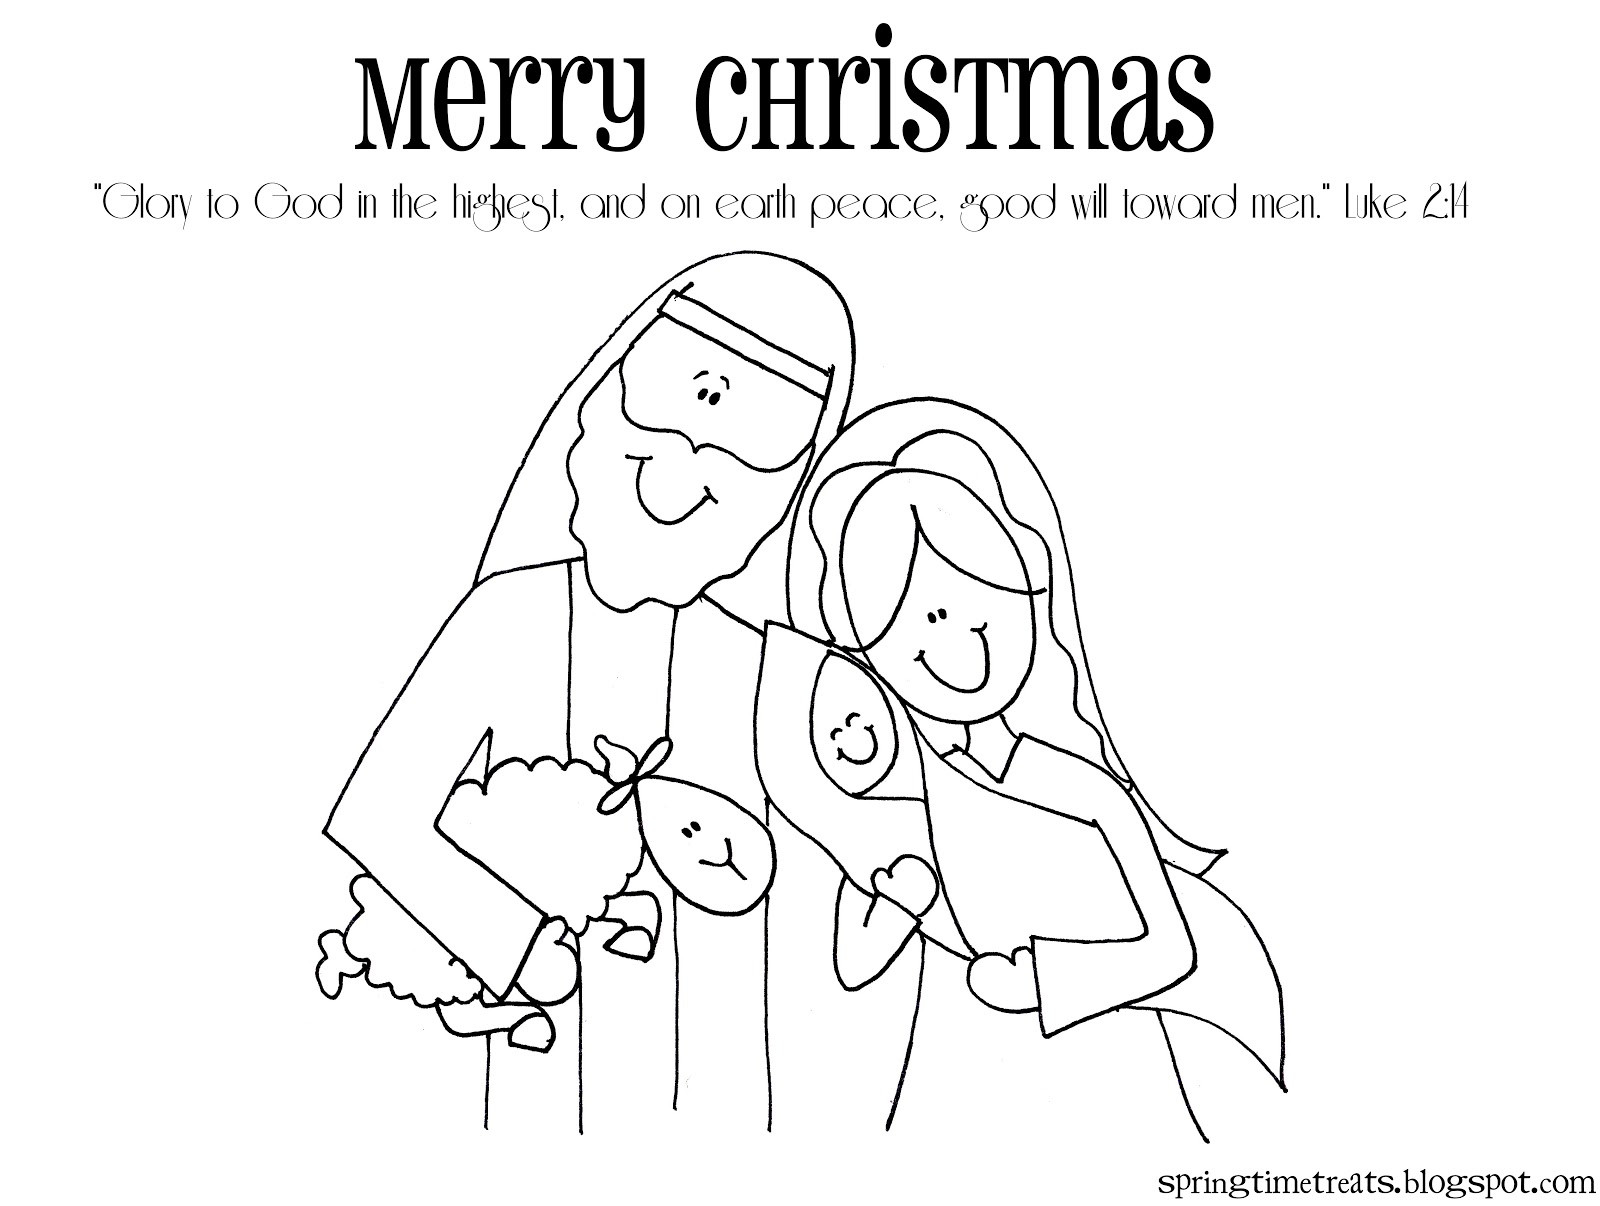 Christmas Nativity Coloring Pages  Spring Time Treats Christmas Nativity printable